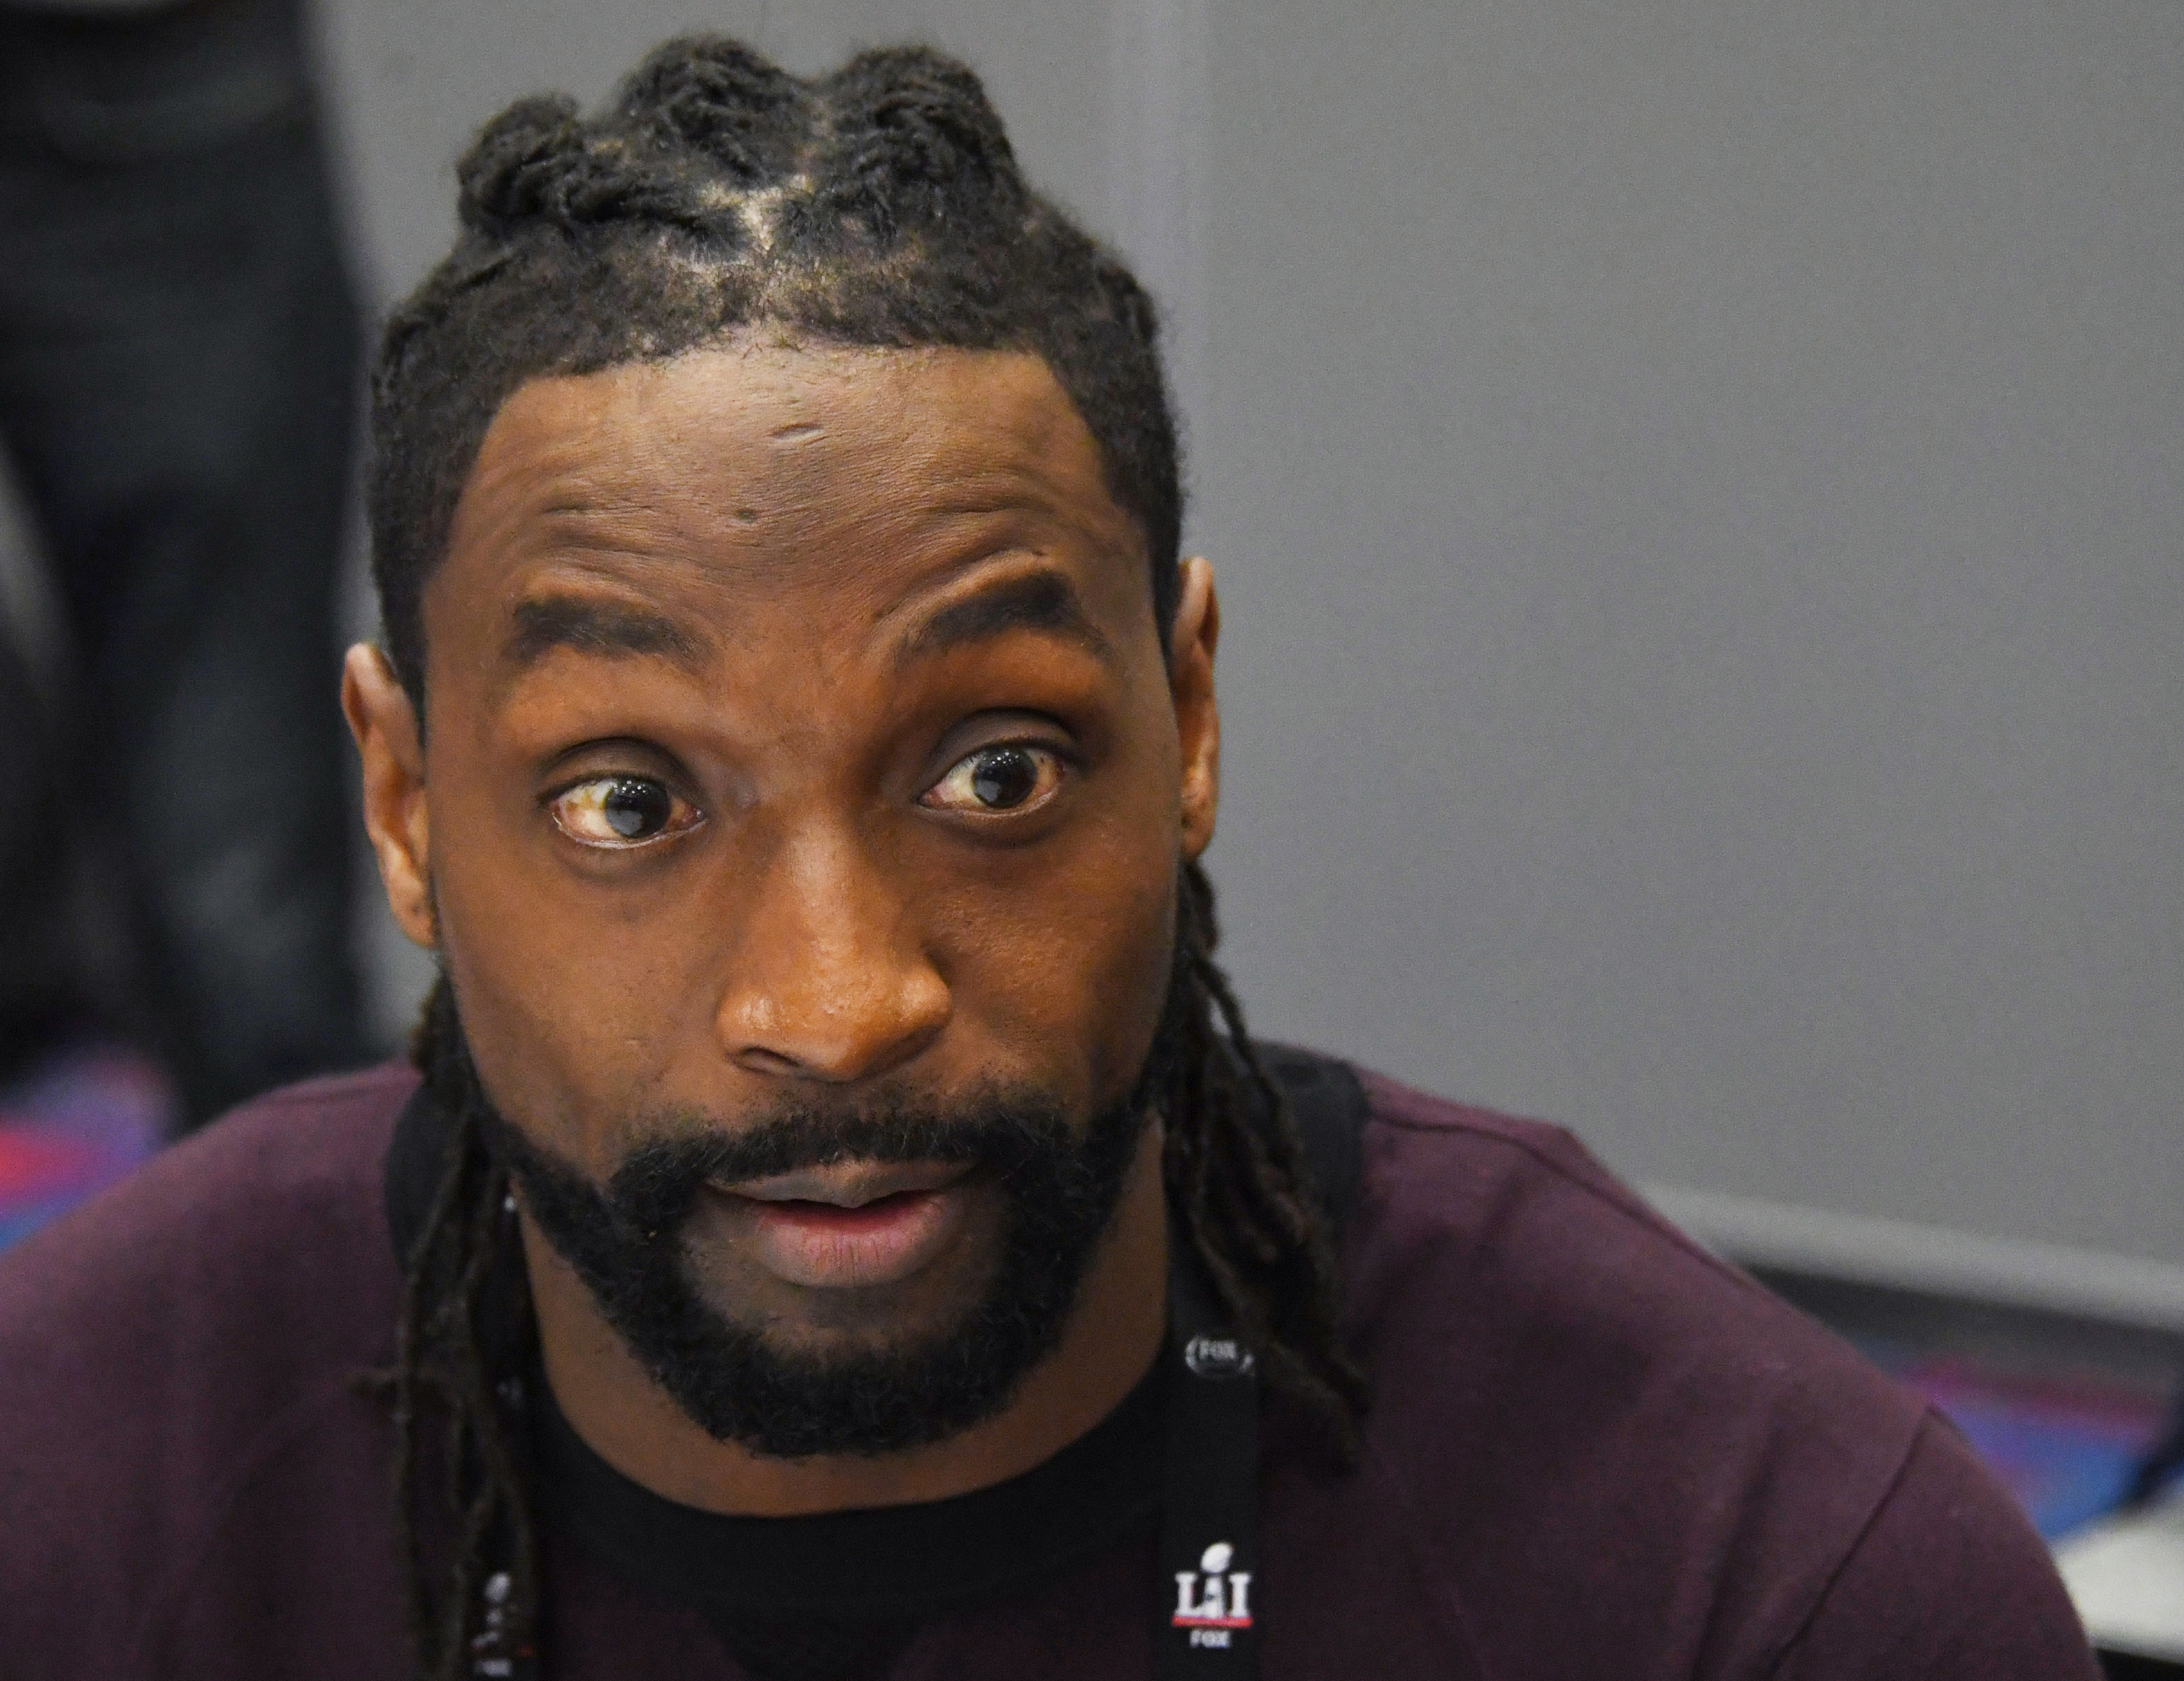 Former Bears CB Charles Tillman on track to becoming FBI agent